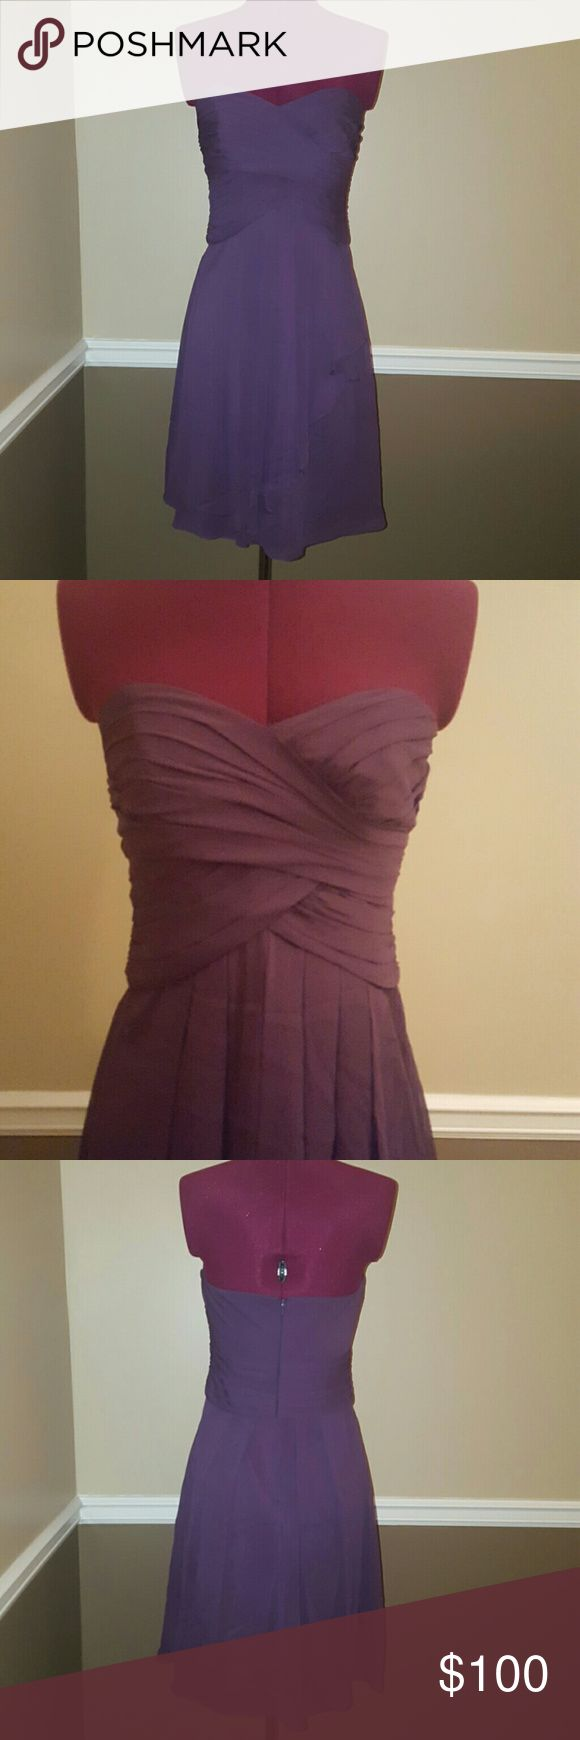 """Plum chiffon bridesmaid dress This dress hugs your curves and the sweetheart neckline is the icing on the cake. There's a rip in the fabric(see pics) but can be taken to David's bridal to fix or DIY. Other measurements are: from top of bust to bottom hem 30"""". Please ask any questions you have and I hope you day is wonderful!! David's Bridal Dresses Strapless"""